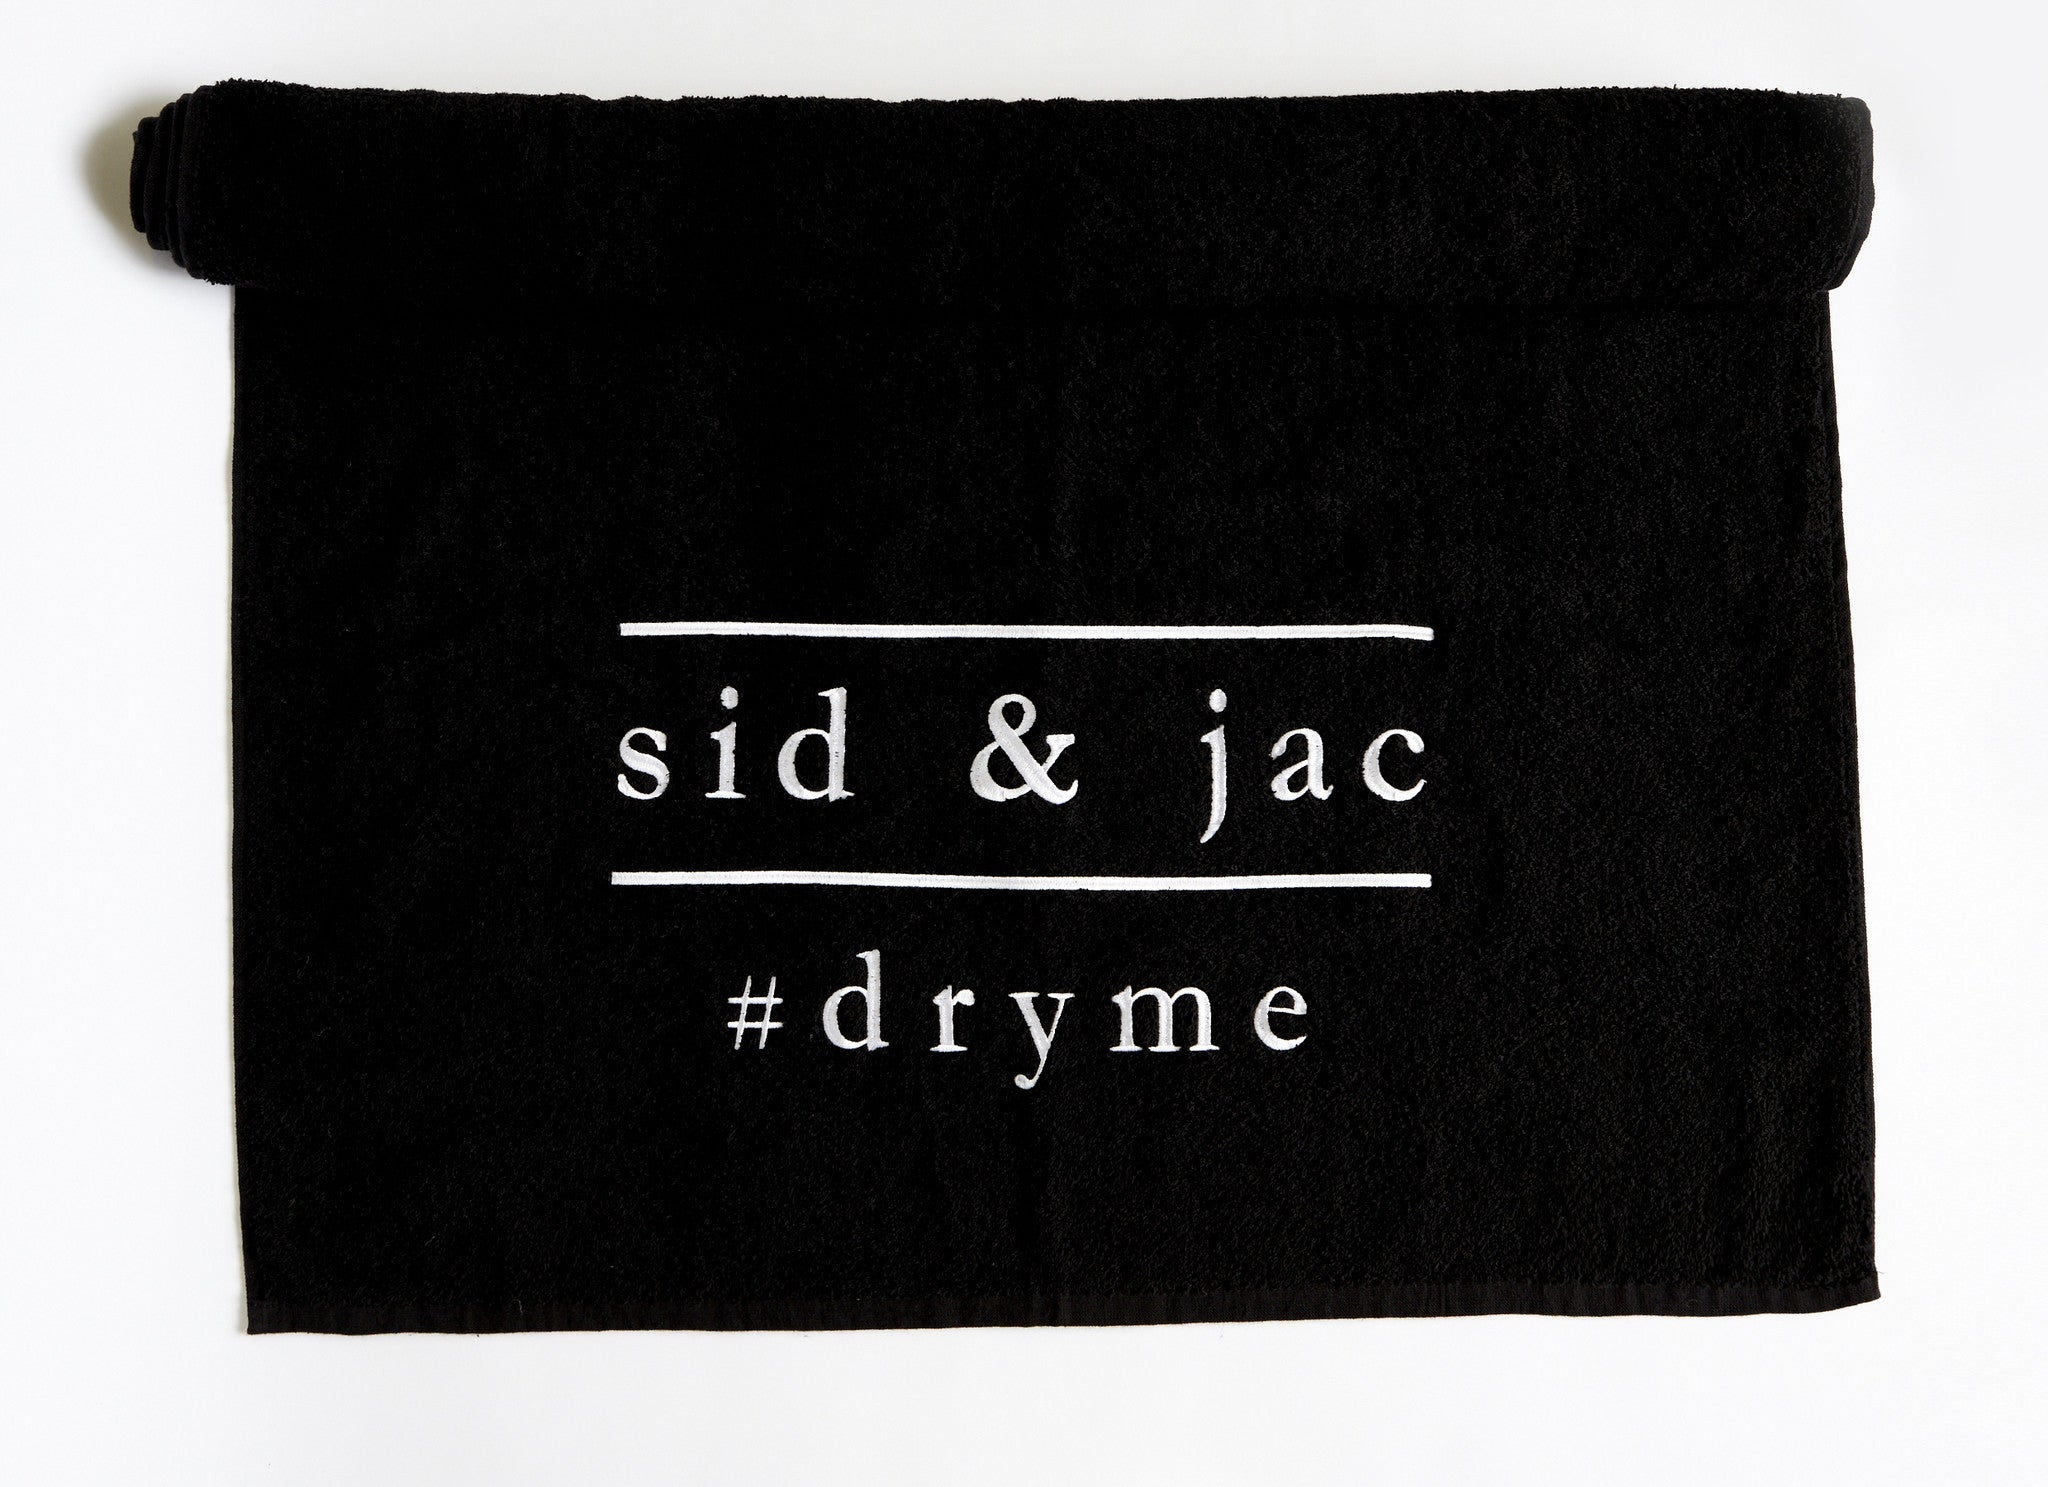 sid and jac gym towel, towels, brands, cool, gym